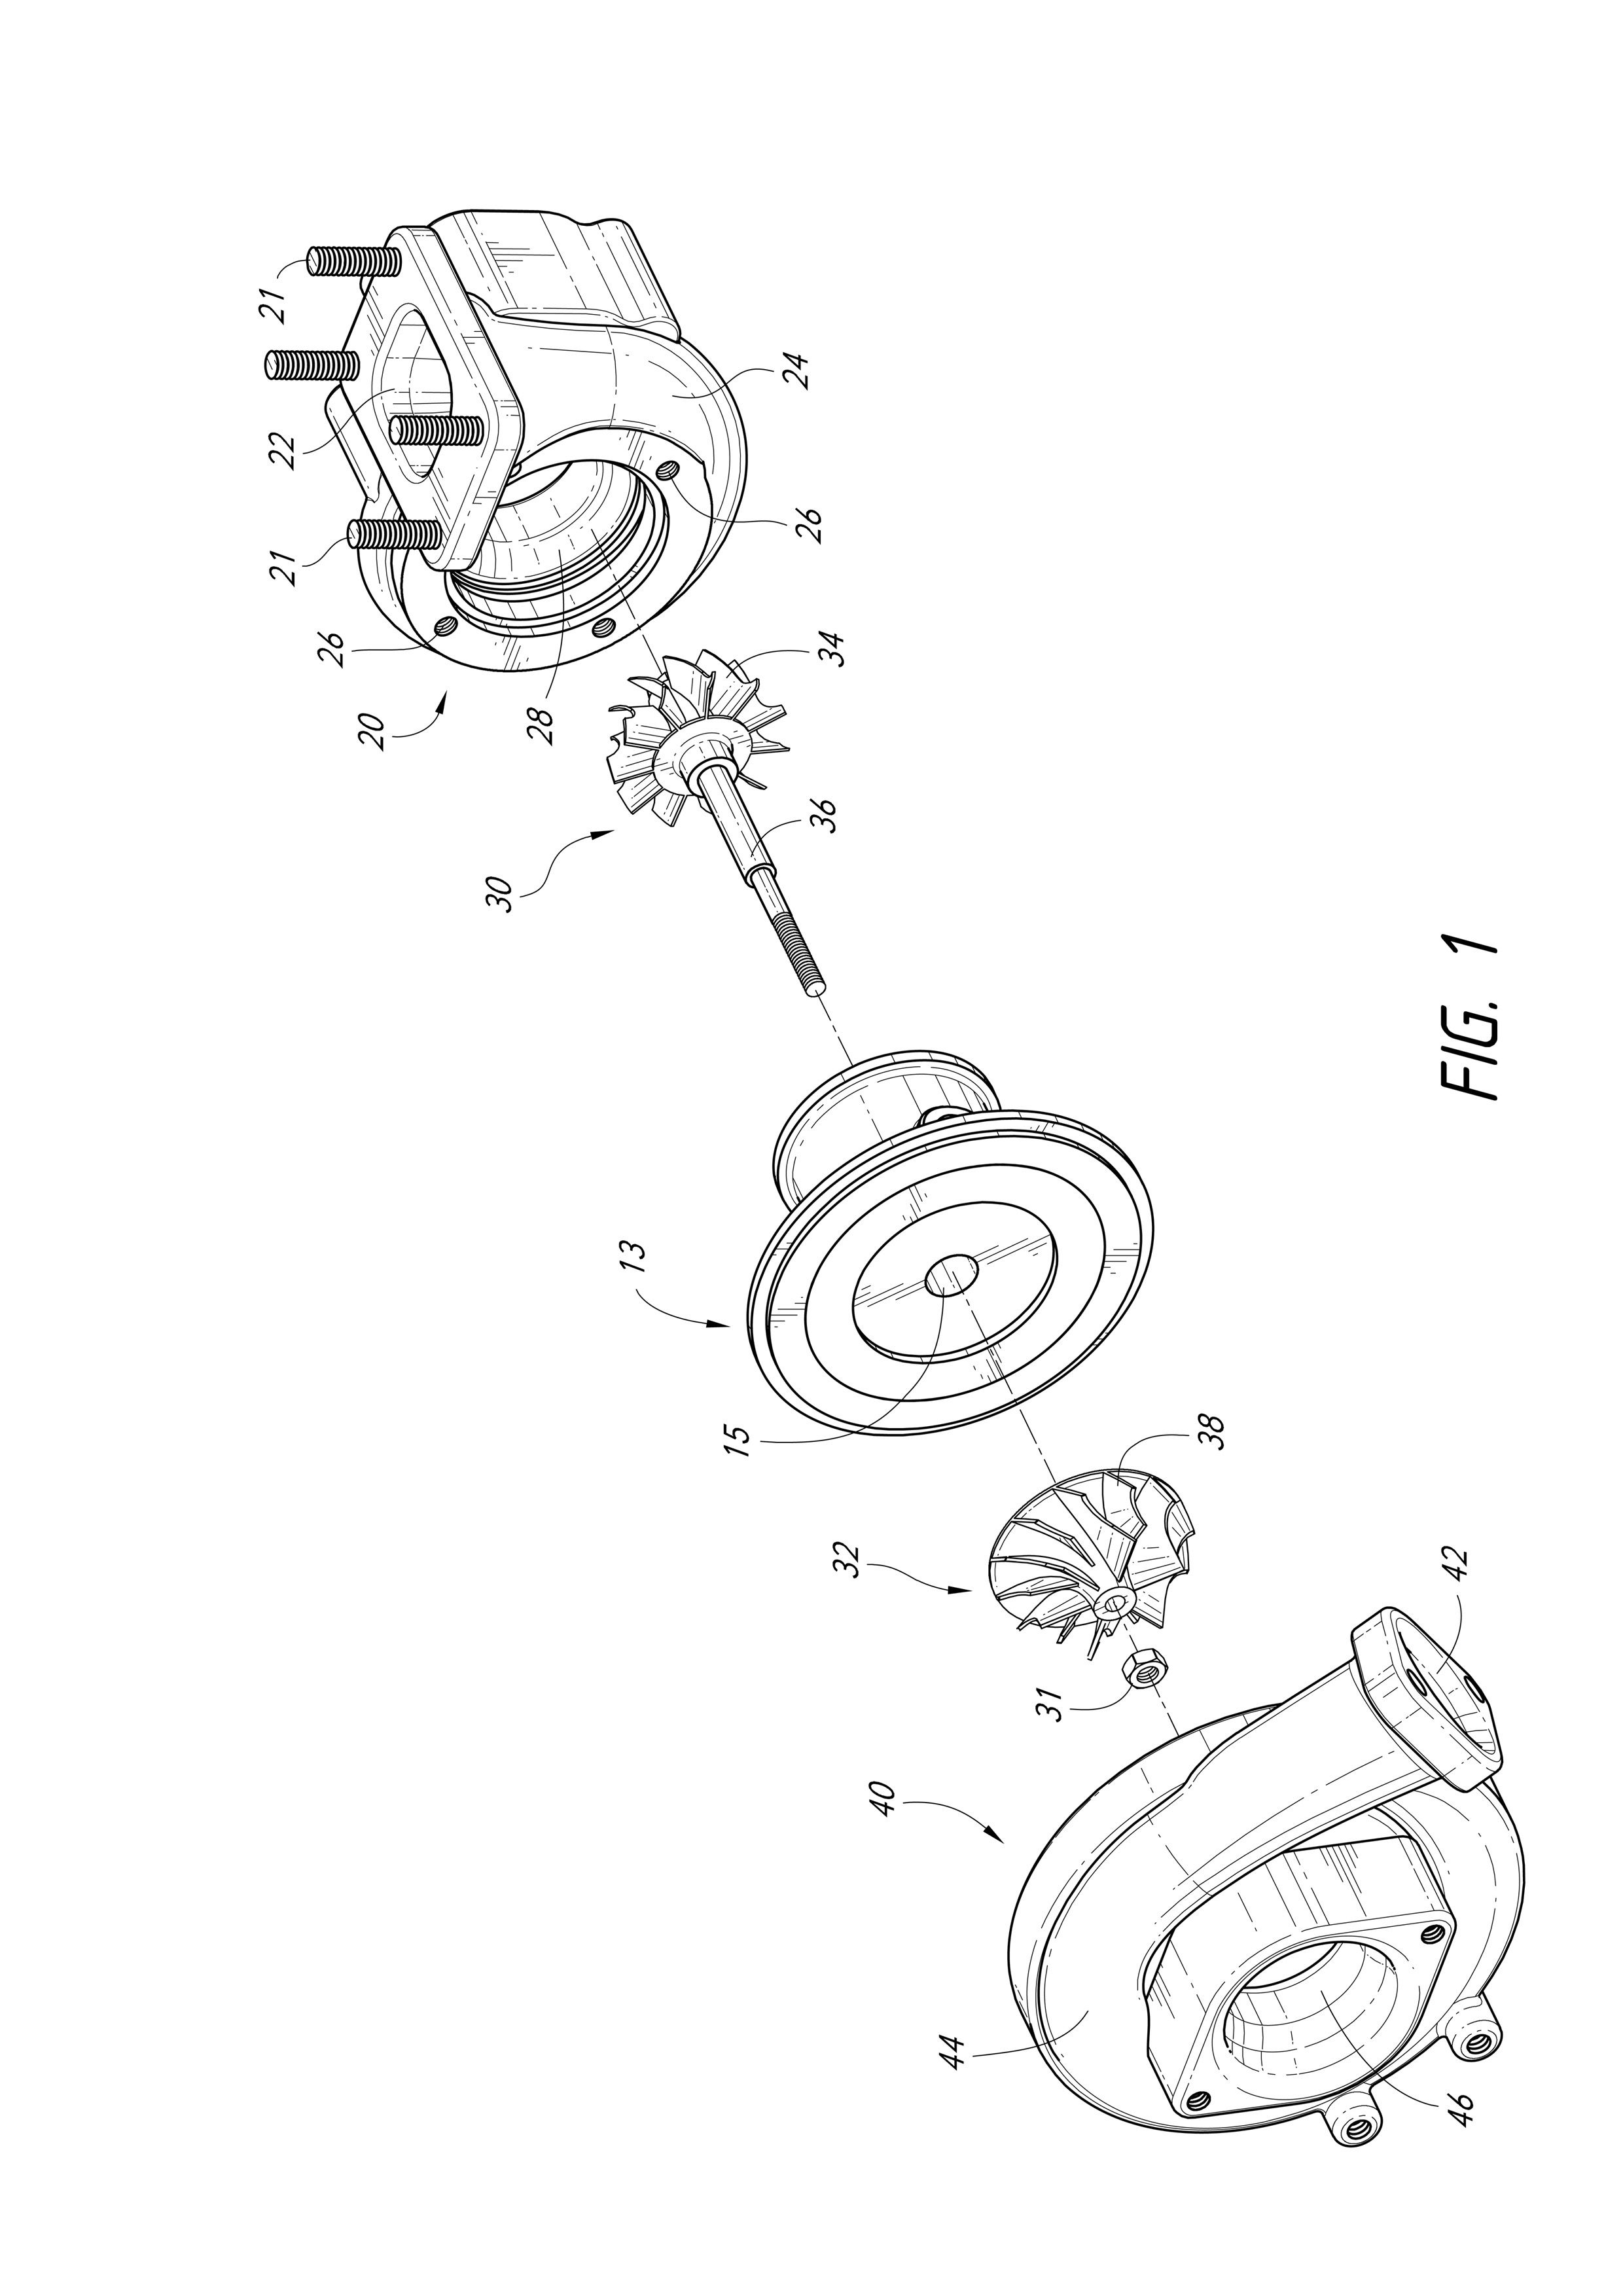 medium resolution of exploded view of a turbo charger combustion engine exploded view drag cars drag